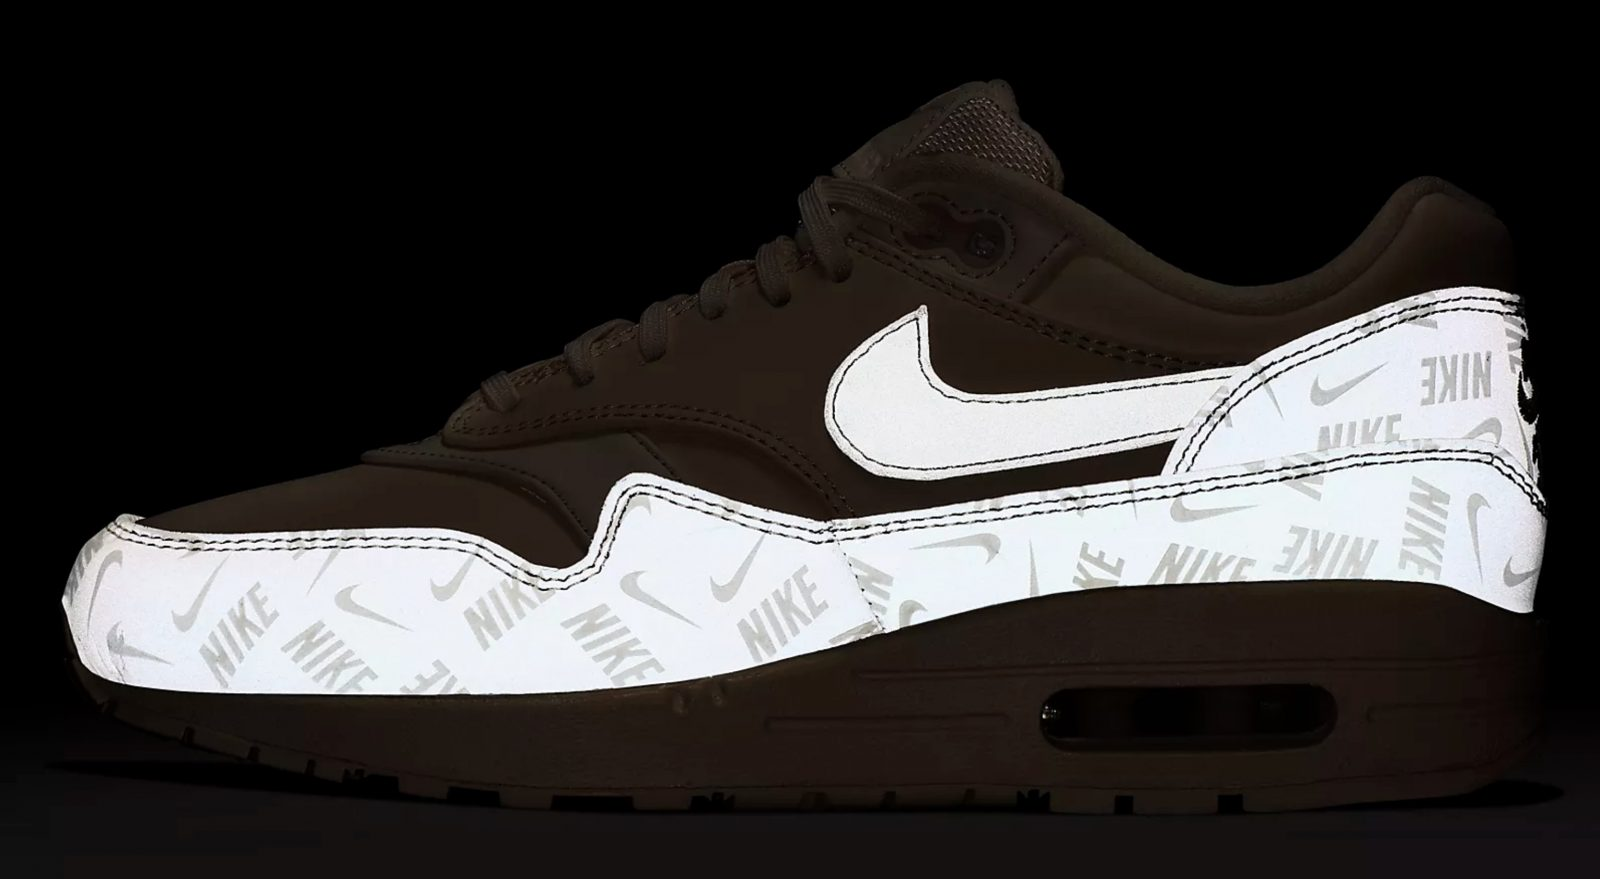 Nike Air Max 1 LX Guava Glow in the Dark | 917691-801